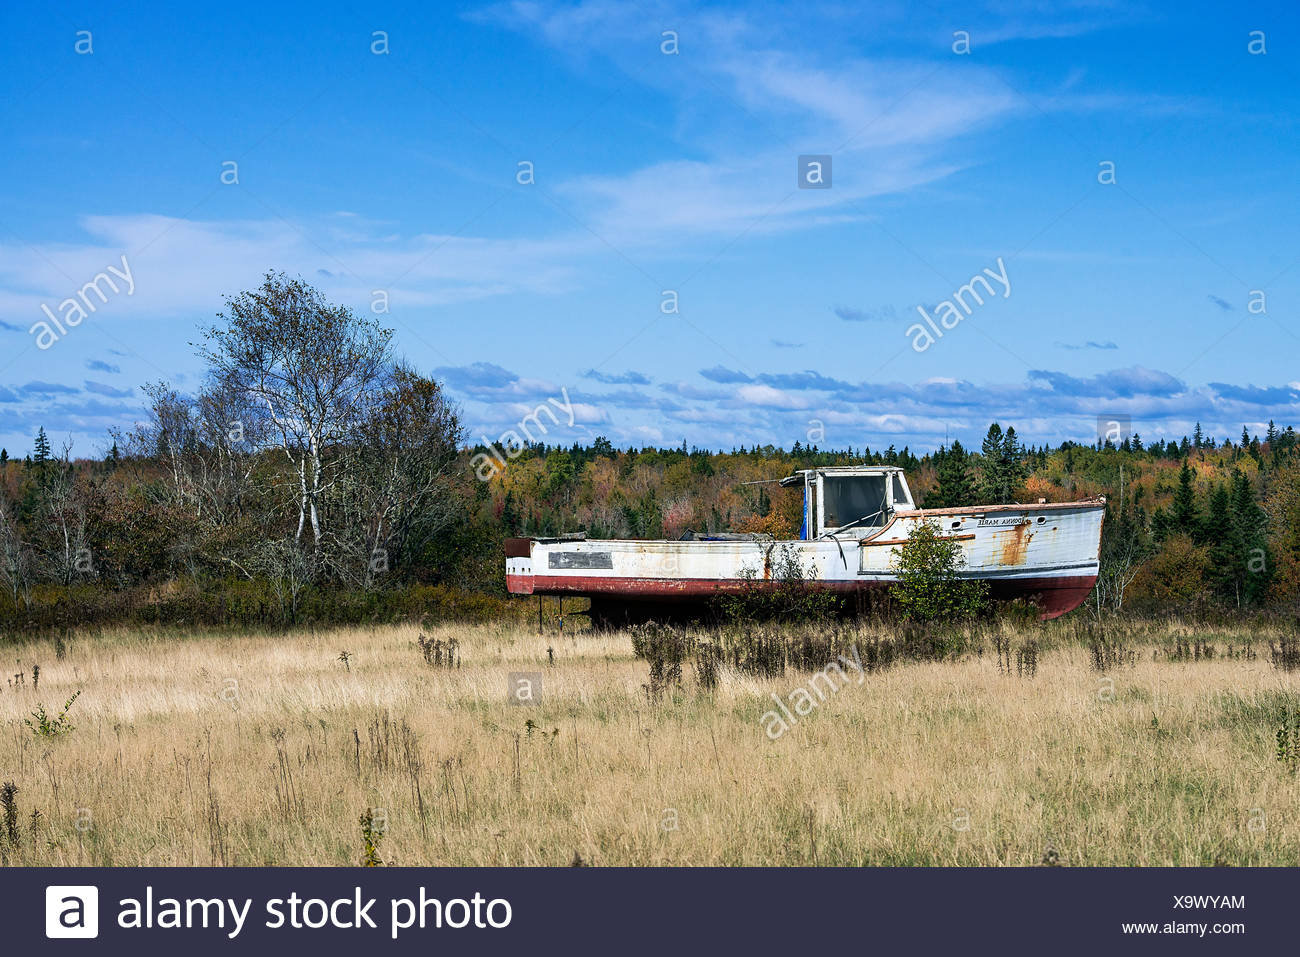 Abandoned lobster boat in a rural field, Maine, USA - Stock Image